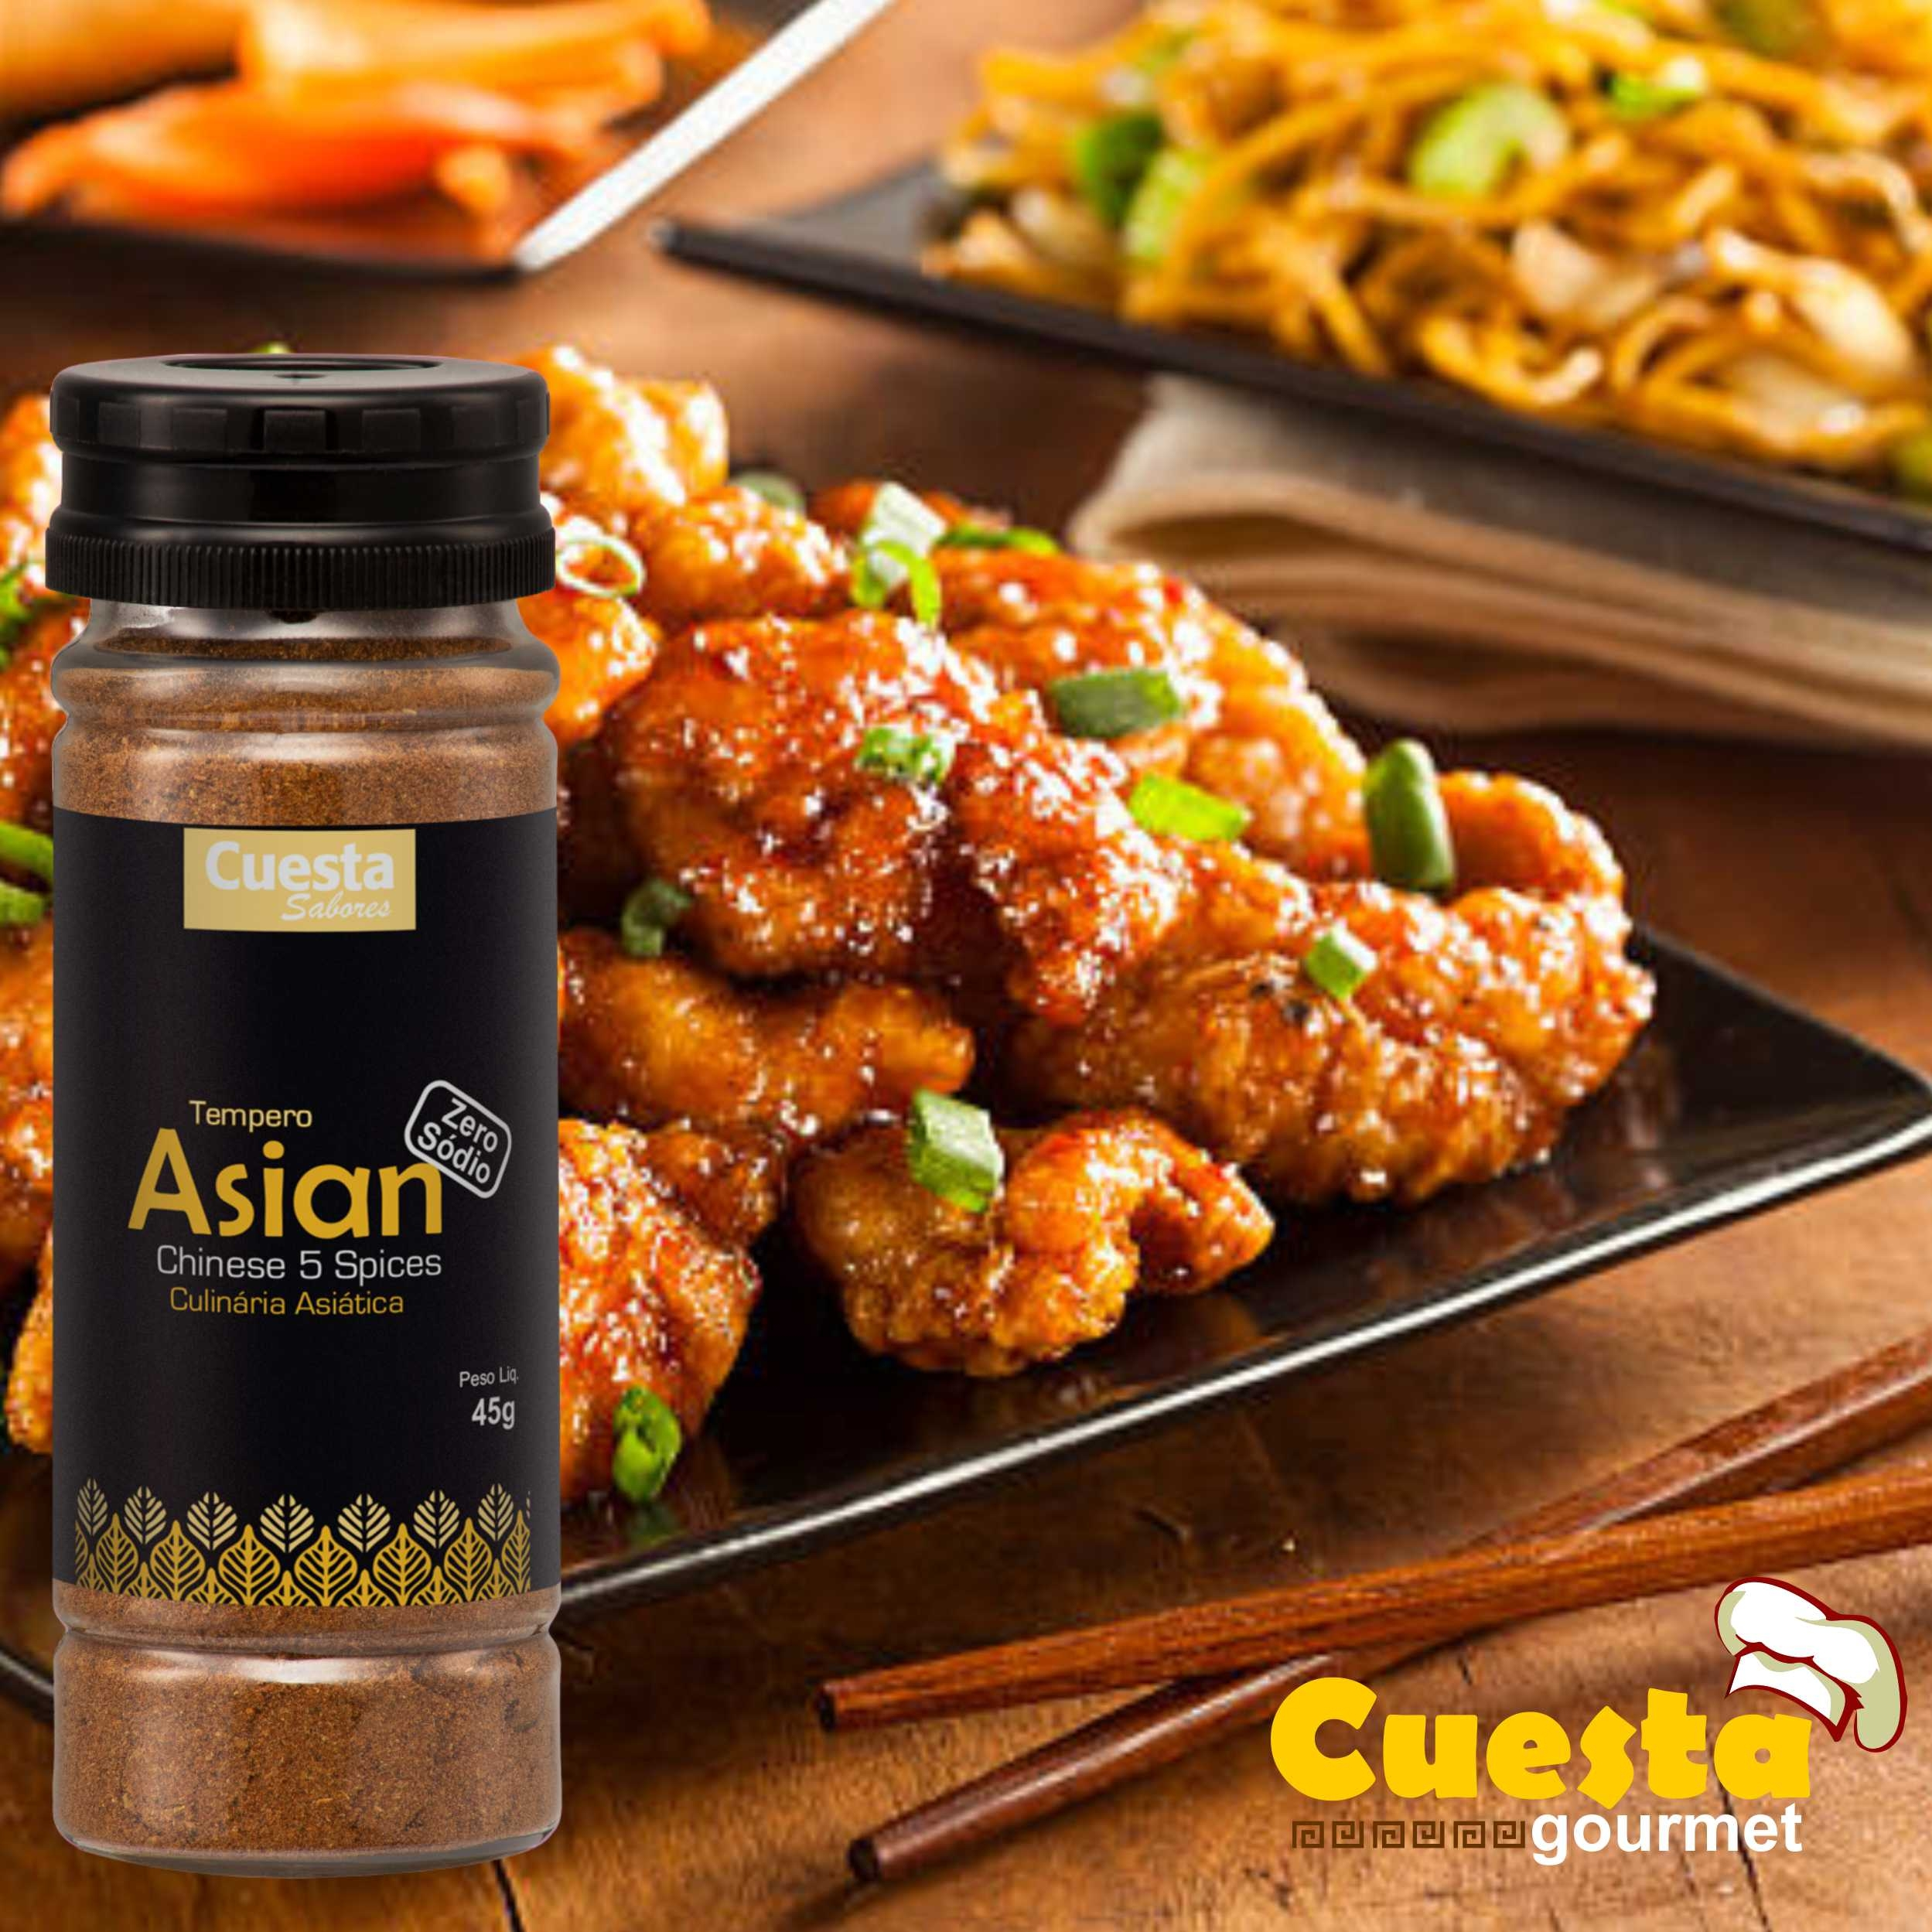 Cuesta Gourmet - Tempero Asian - Zero Sódio